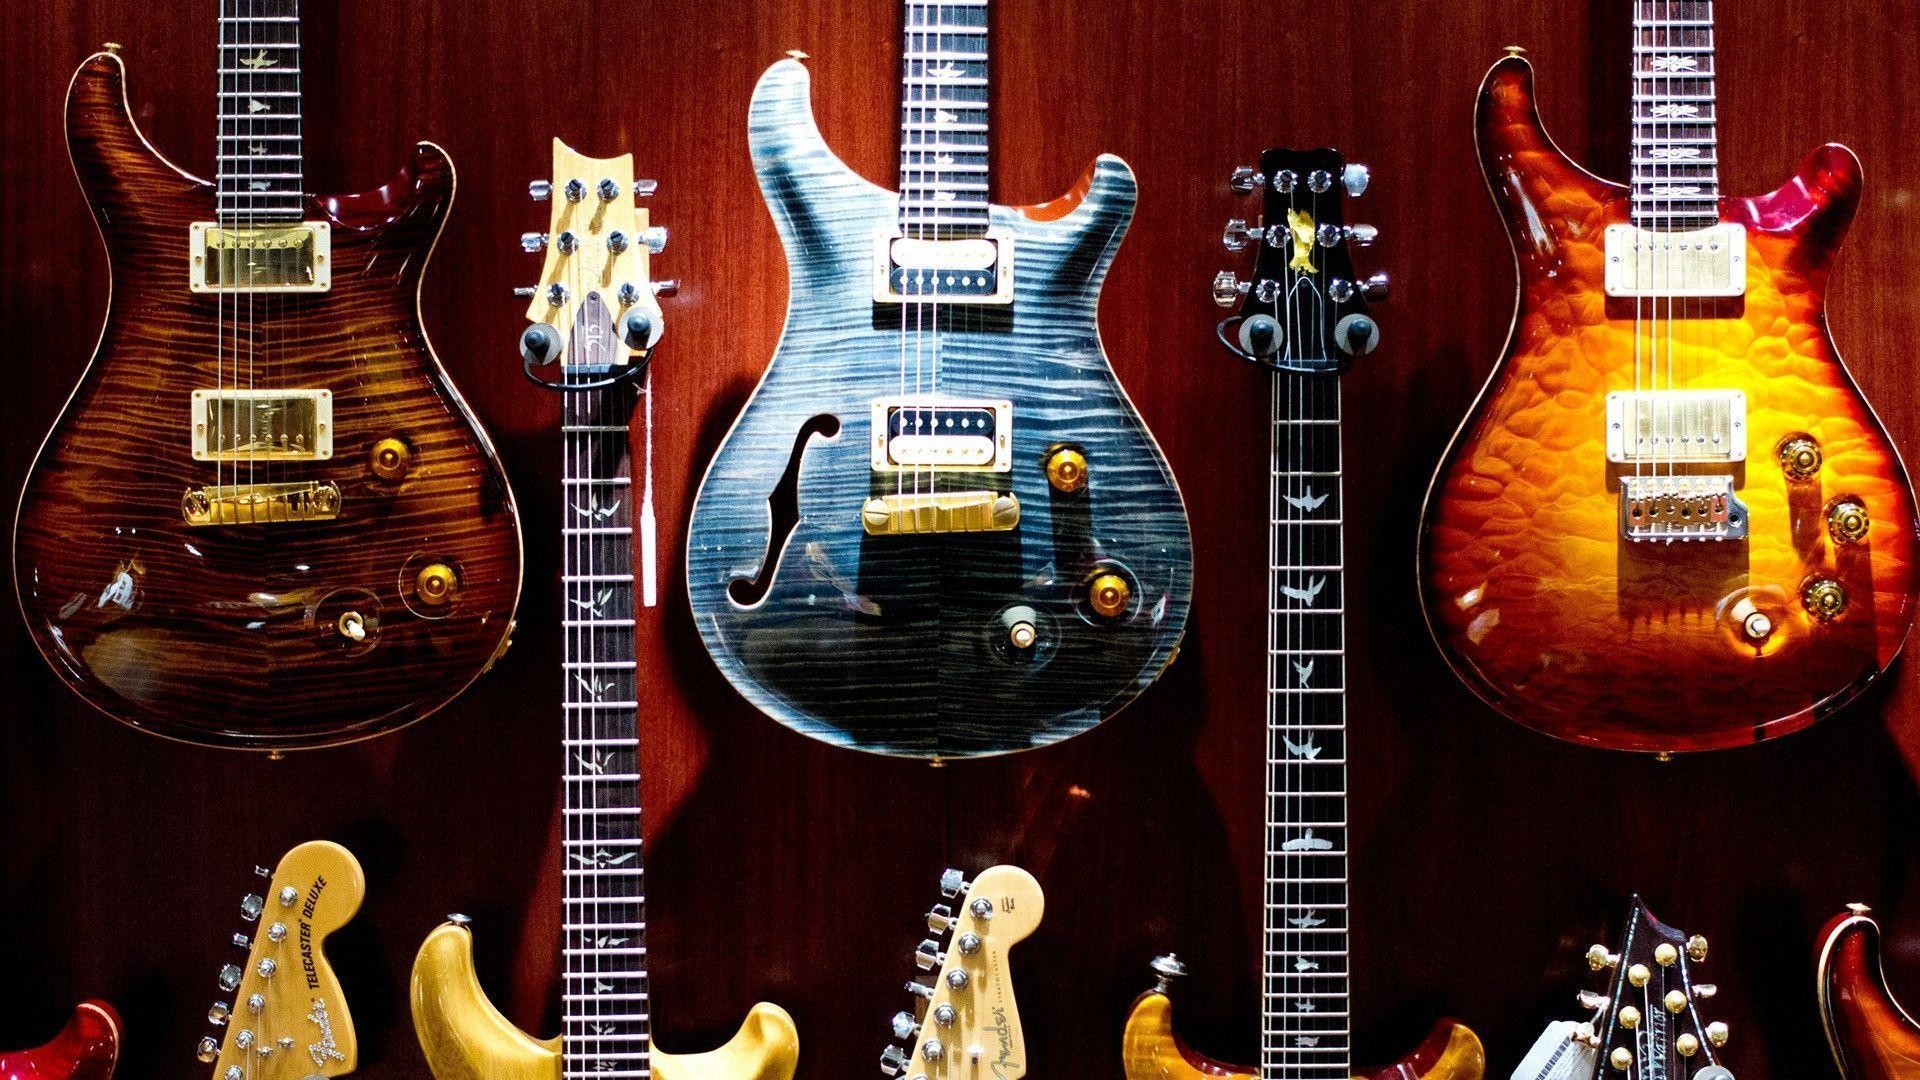 1123406-popular-electric-guitar-wallpaper-1920x1080.jpg